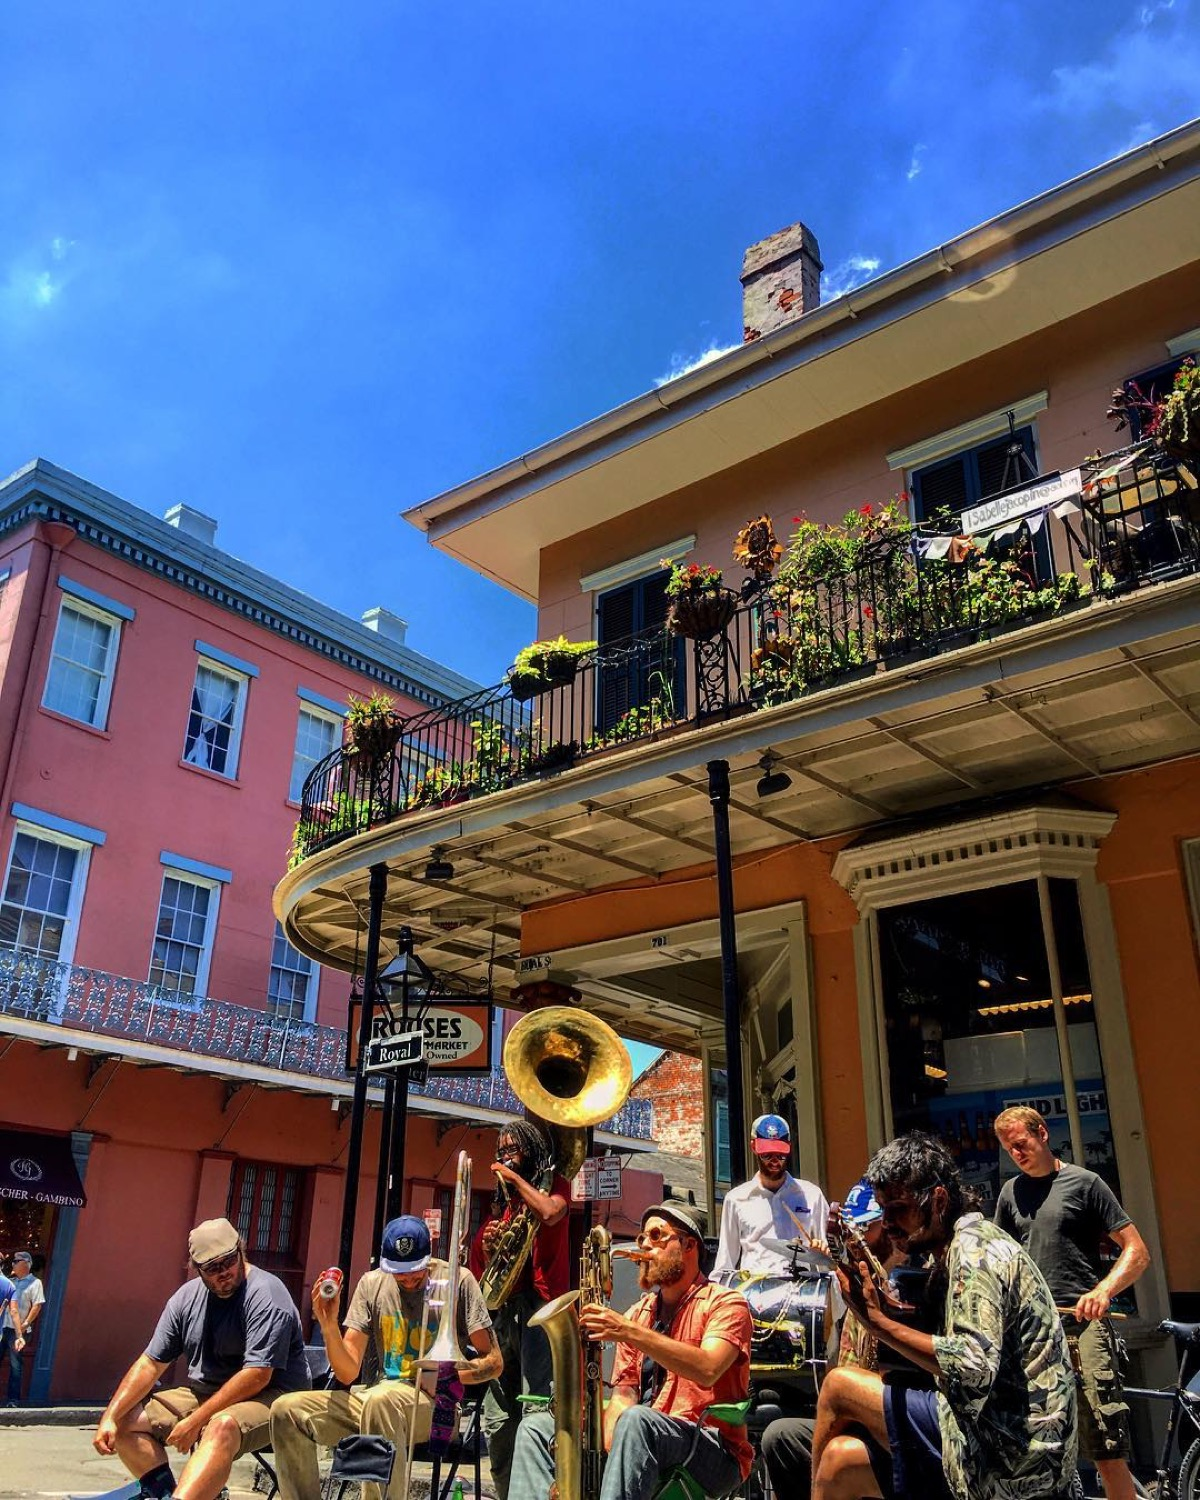 PLACE: French Quarter, New Orleans / MILES FROM CINCY: 815 / ABOUT: New Orleans' French Quarter is well known for its shenanigans, but come off-season or peer into a side alley and you'll realize this is far more than a large, glitzy outdoor cantina. / Image courtesy of Instagram user @melinapalisse // Published: 5.14.17